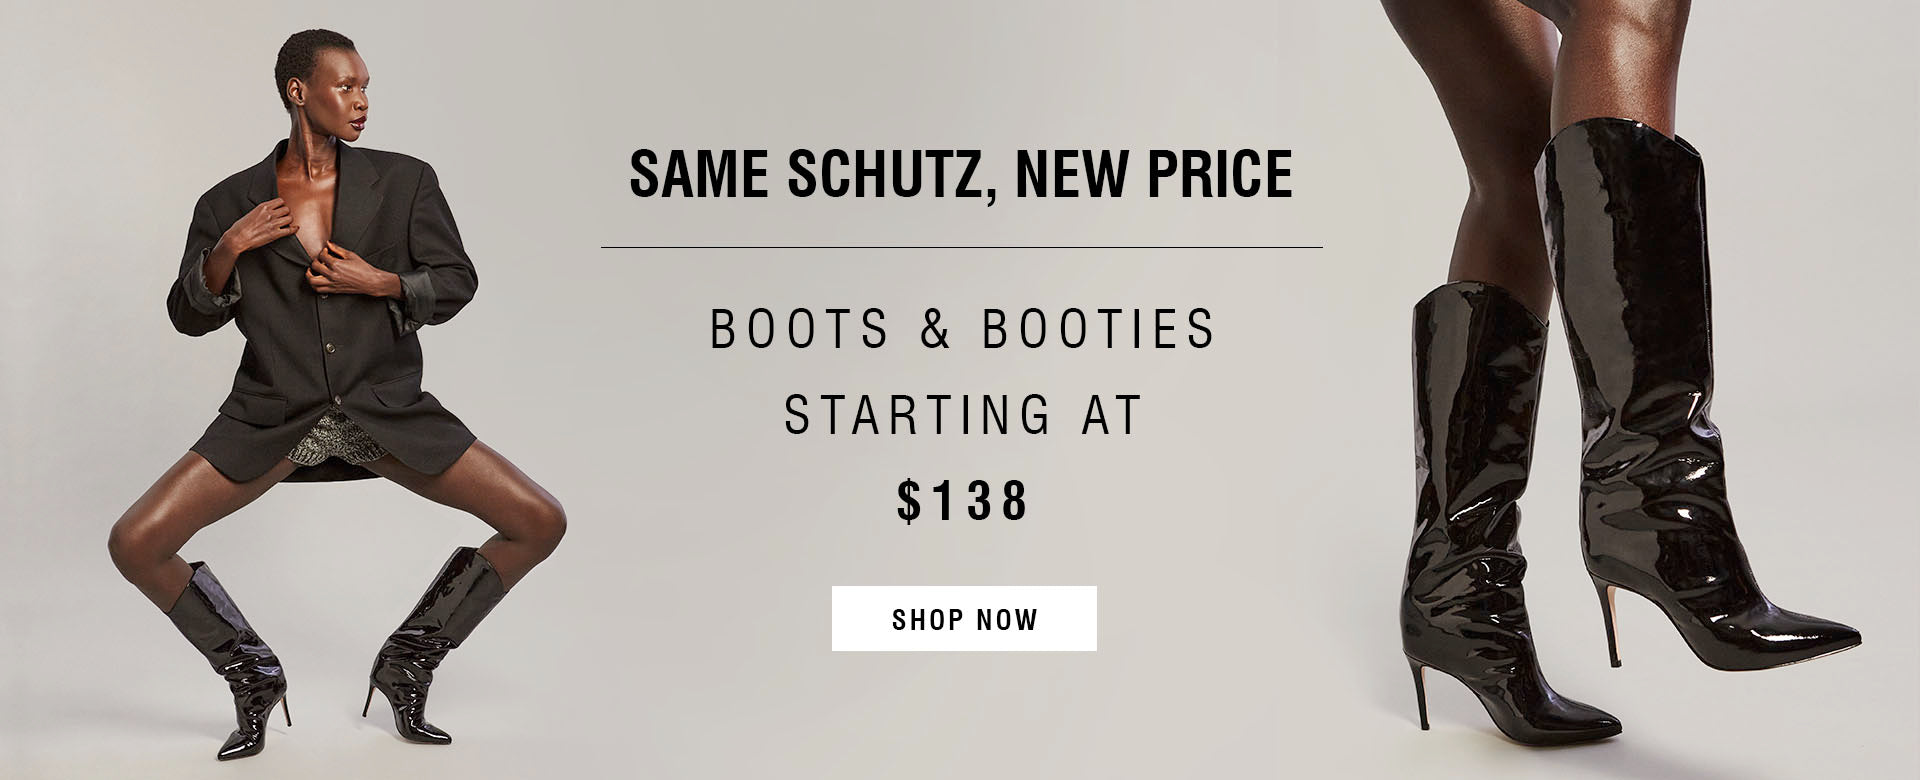 New prices, boots